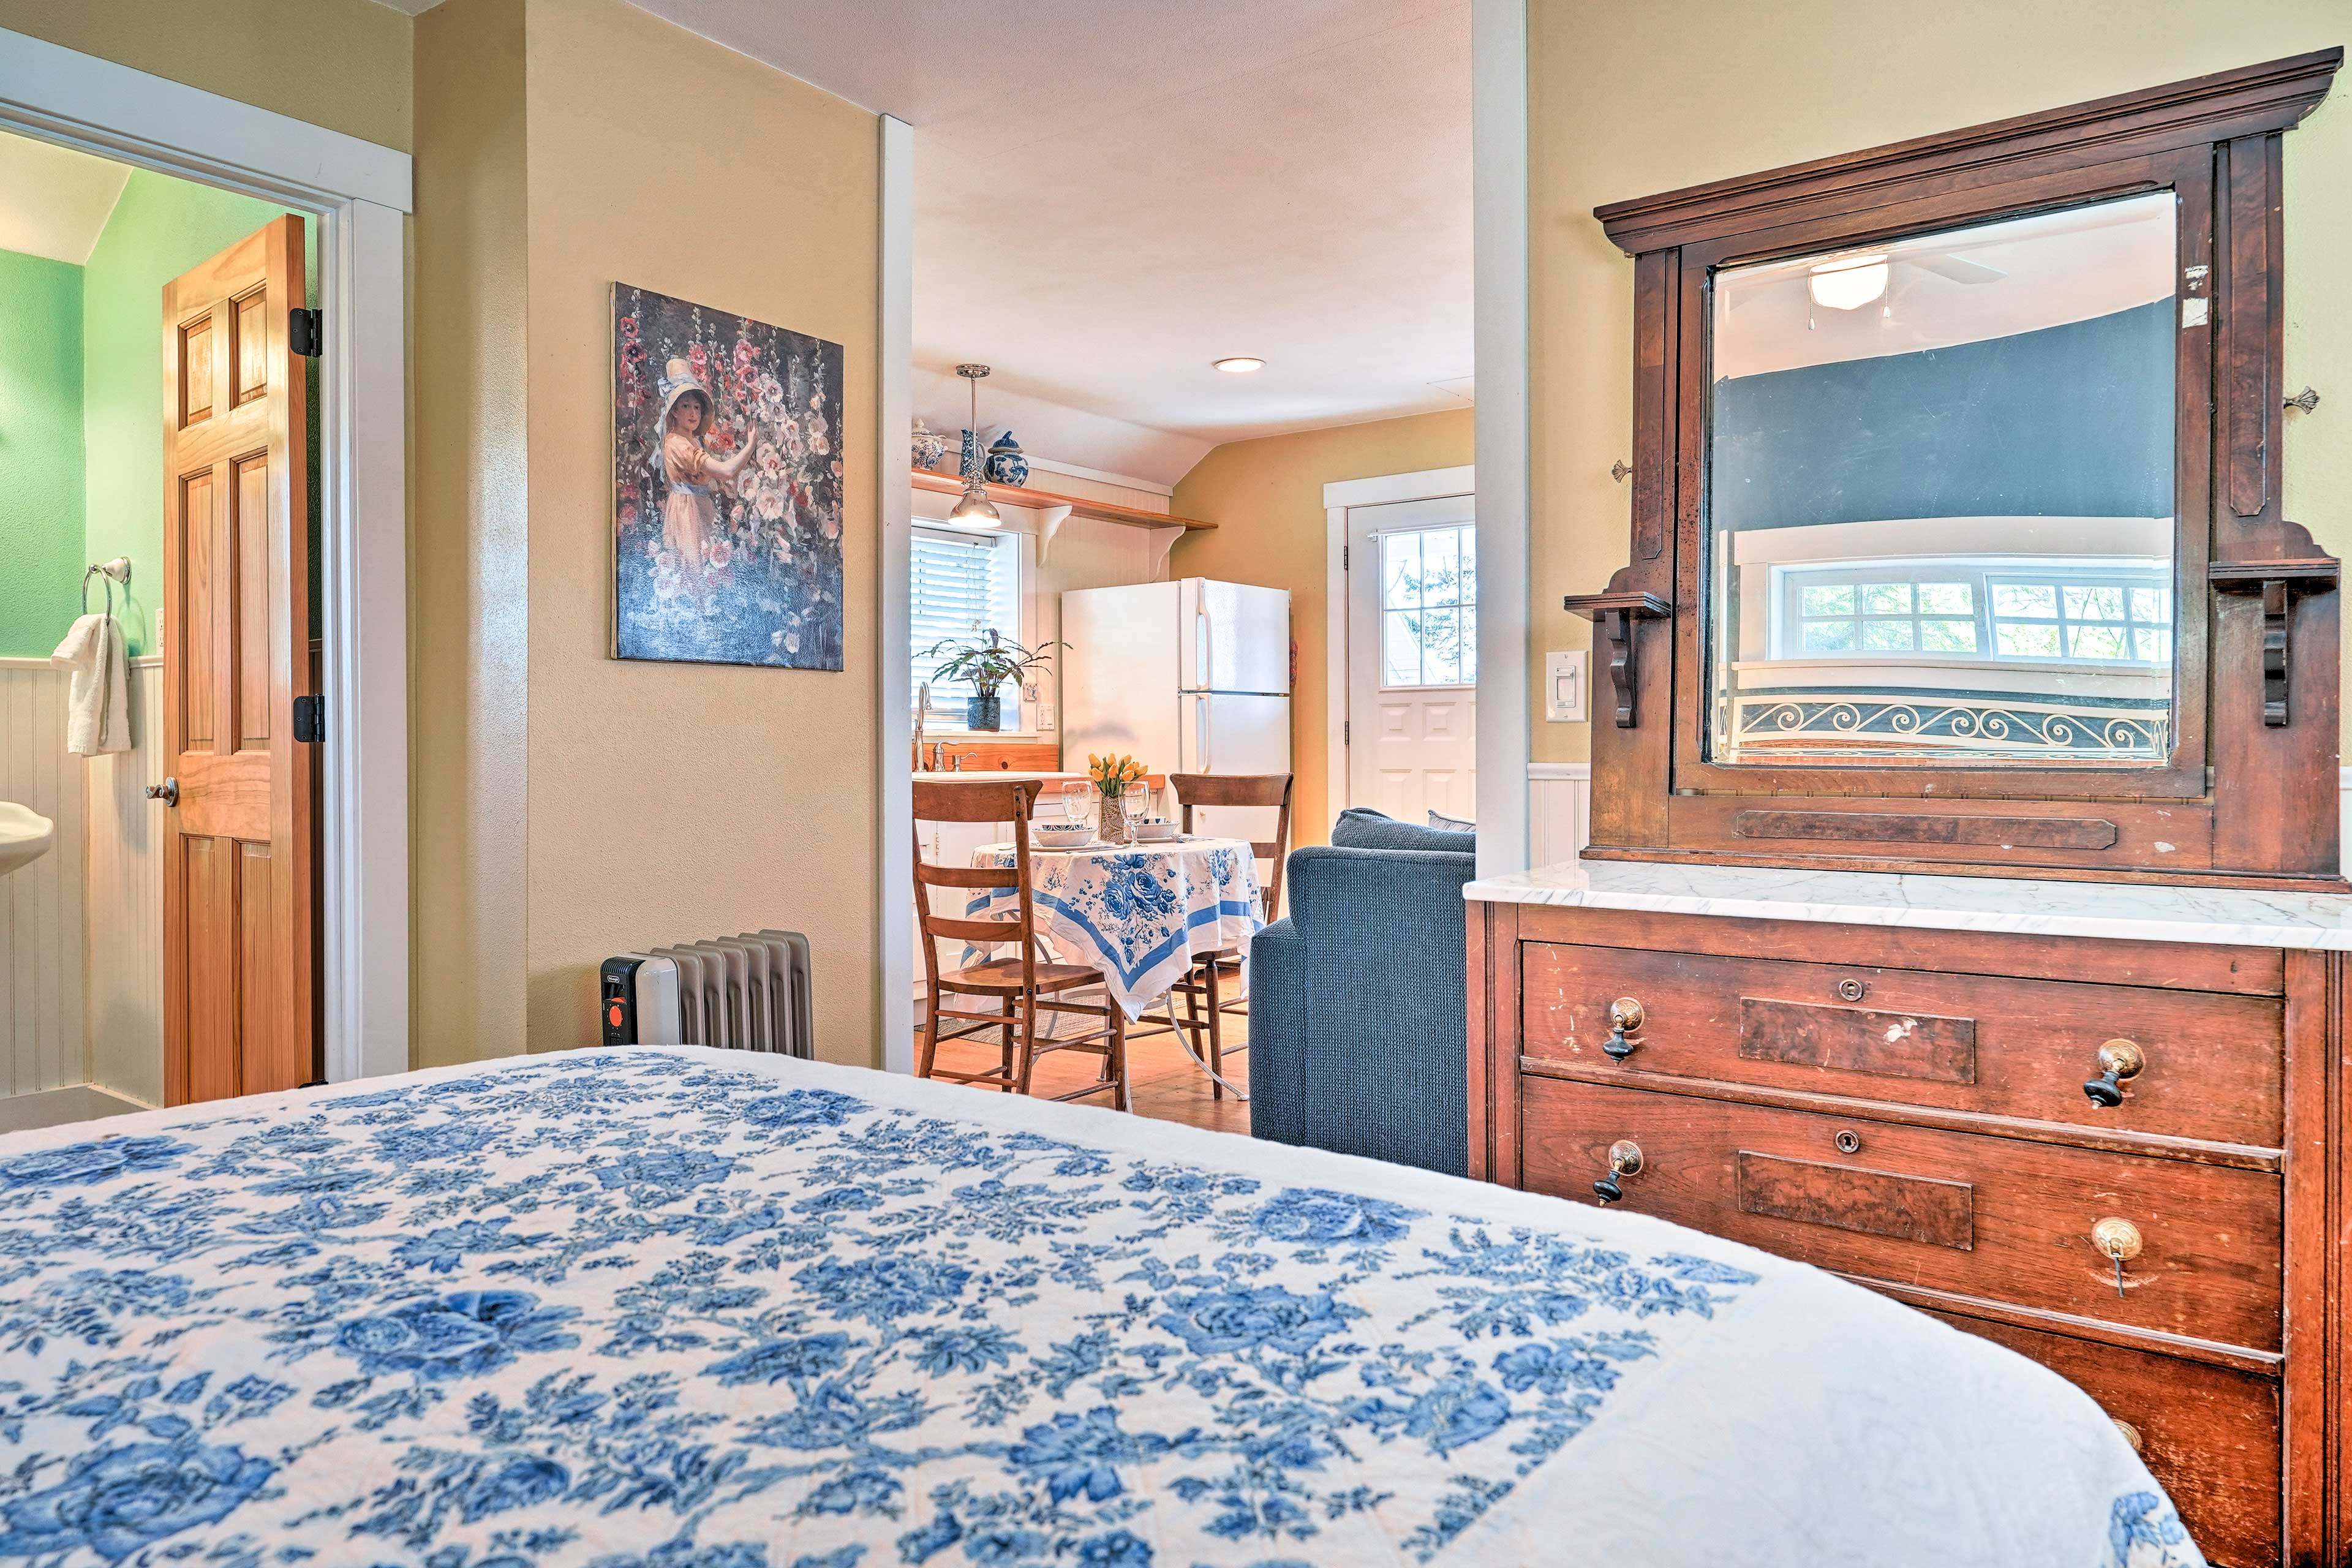 A large dresser and closet let you unpack and feel at home during your stay.